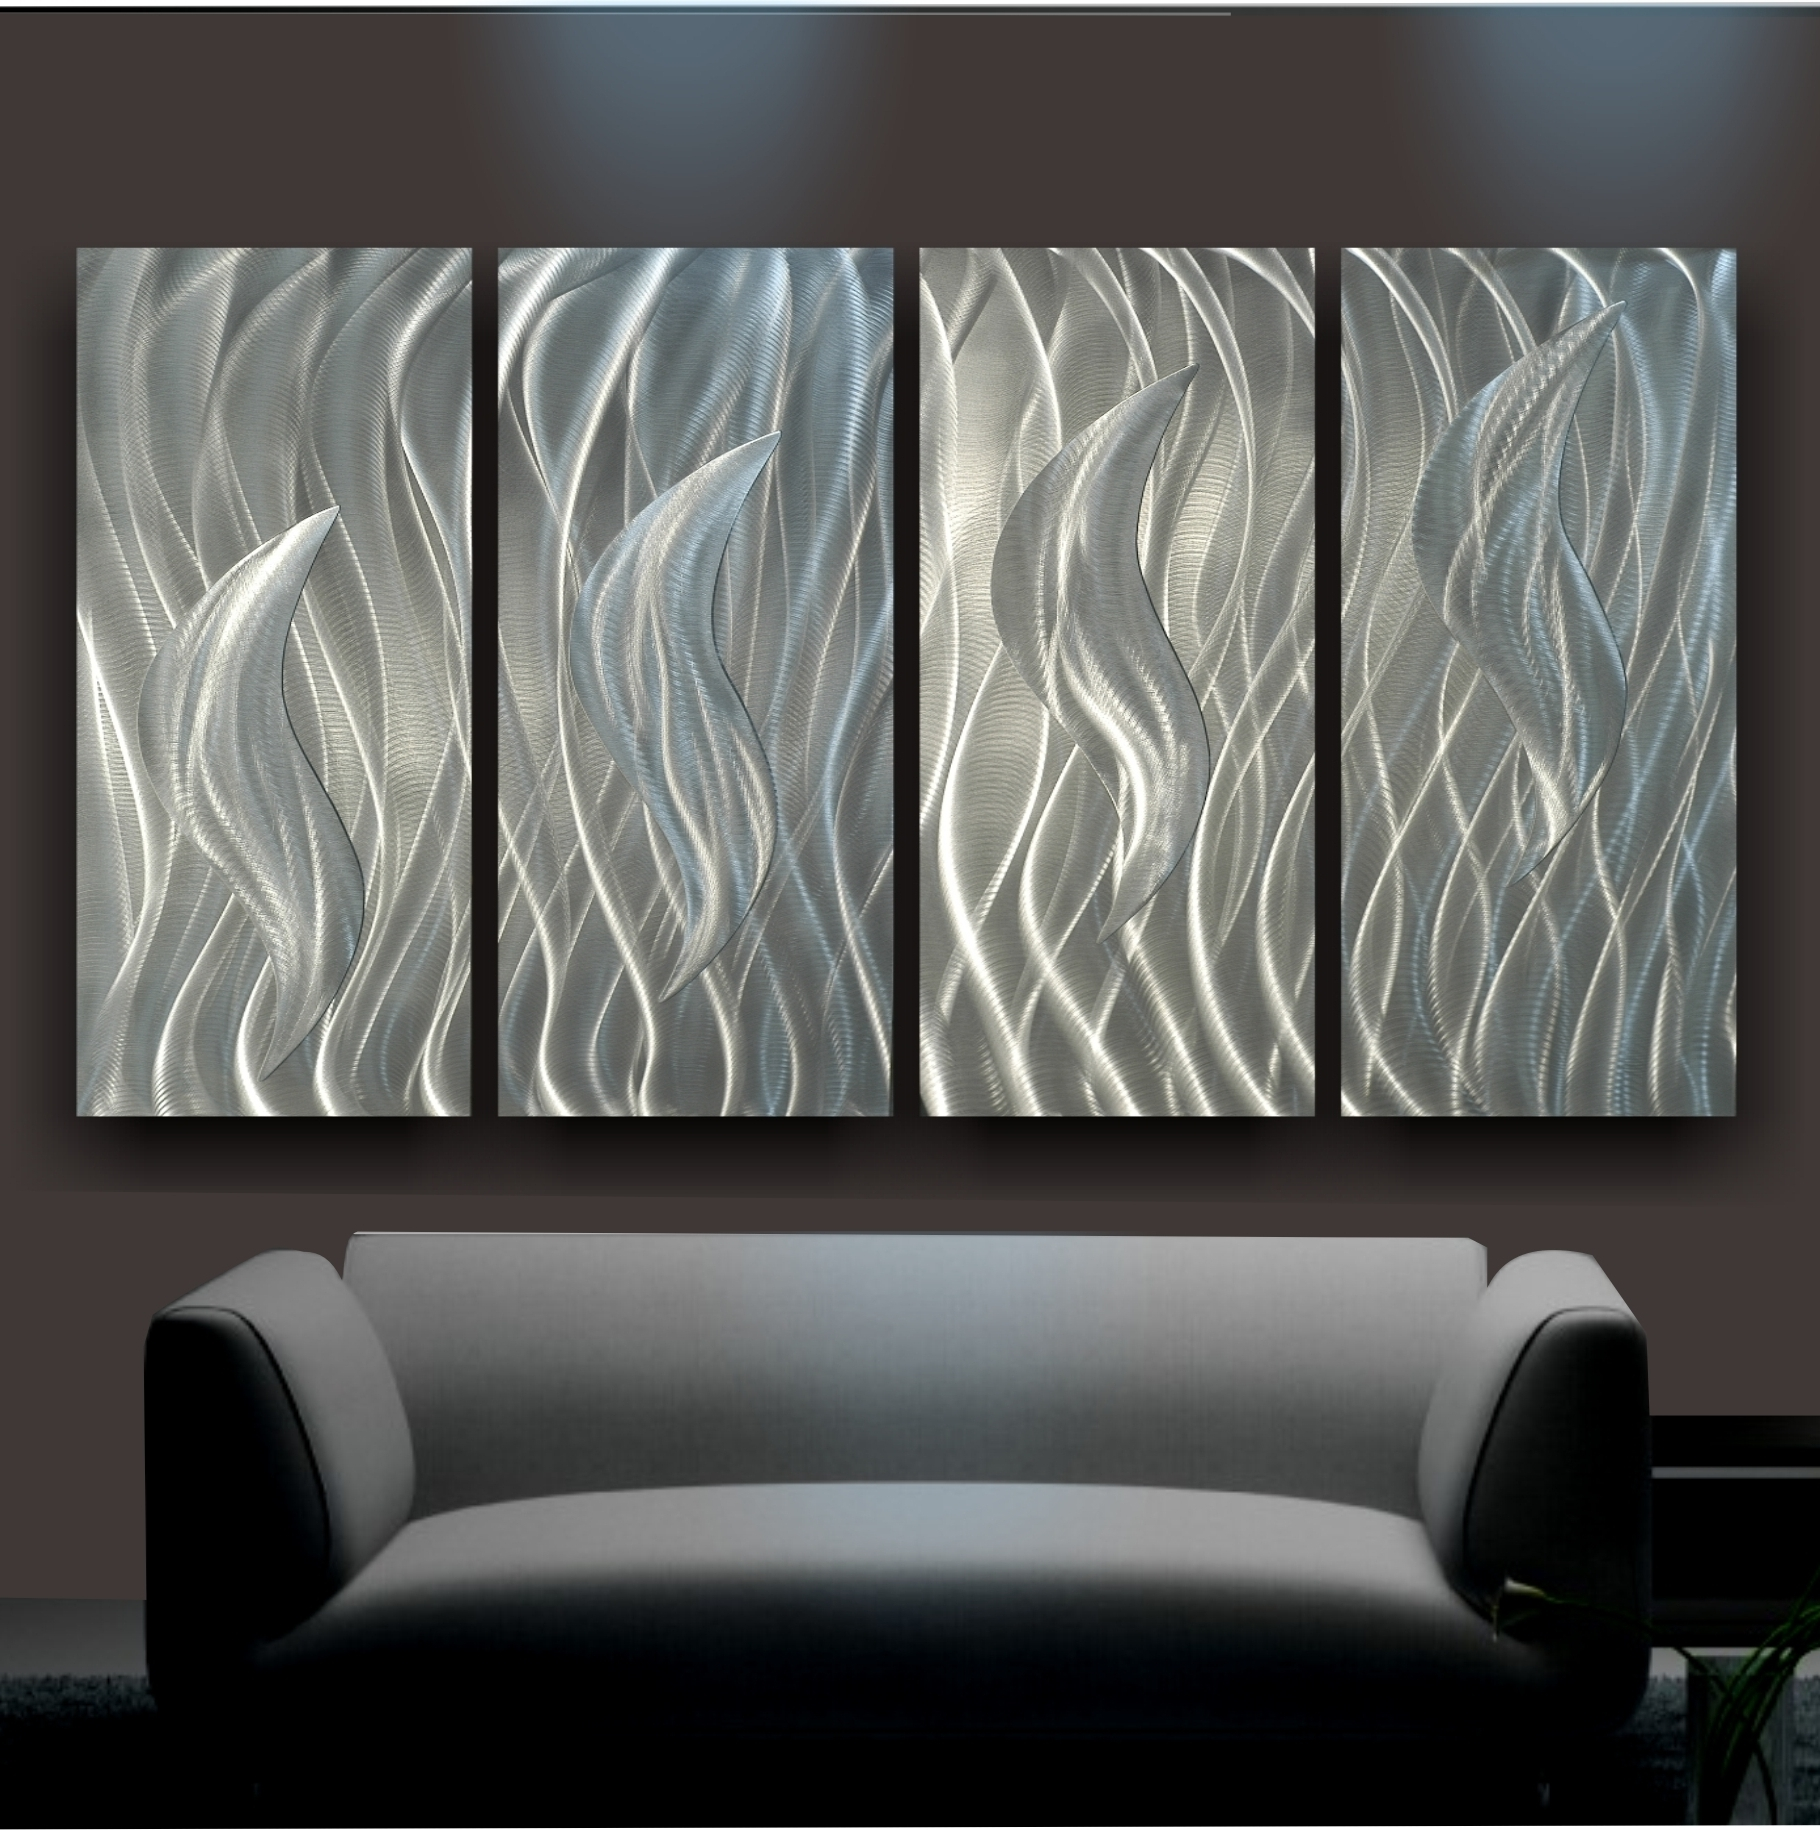 Fashionable Steel Wall Surface Fine Art Is A Contemporary Sort Of Art Work Regarding Metal Art For Walls (View 2 of 15)